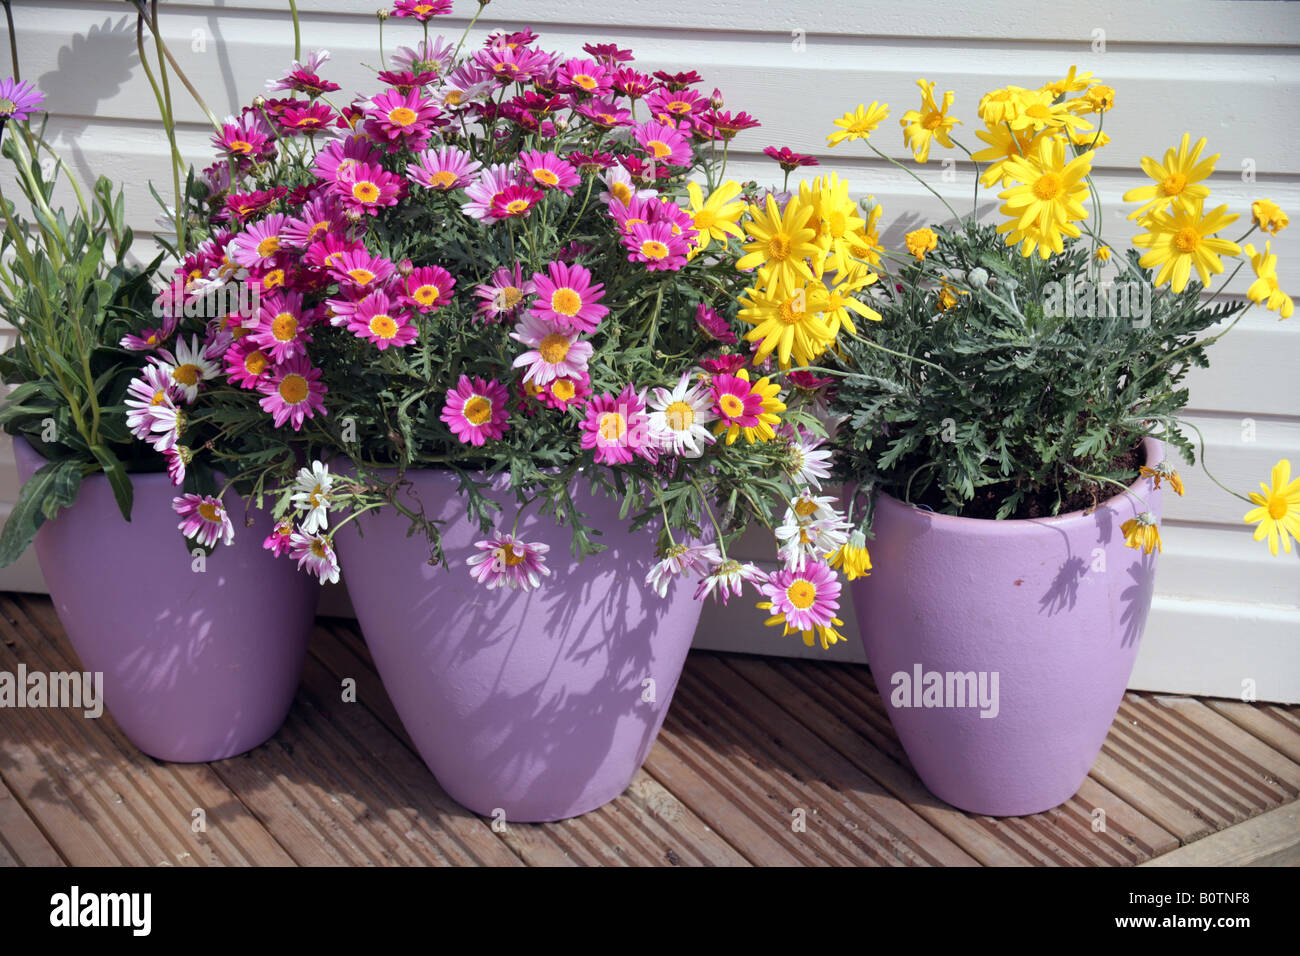 colourful flowerpot display - Stock Image